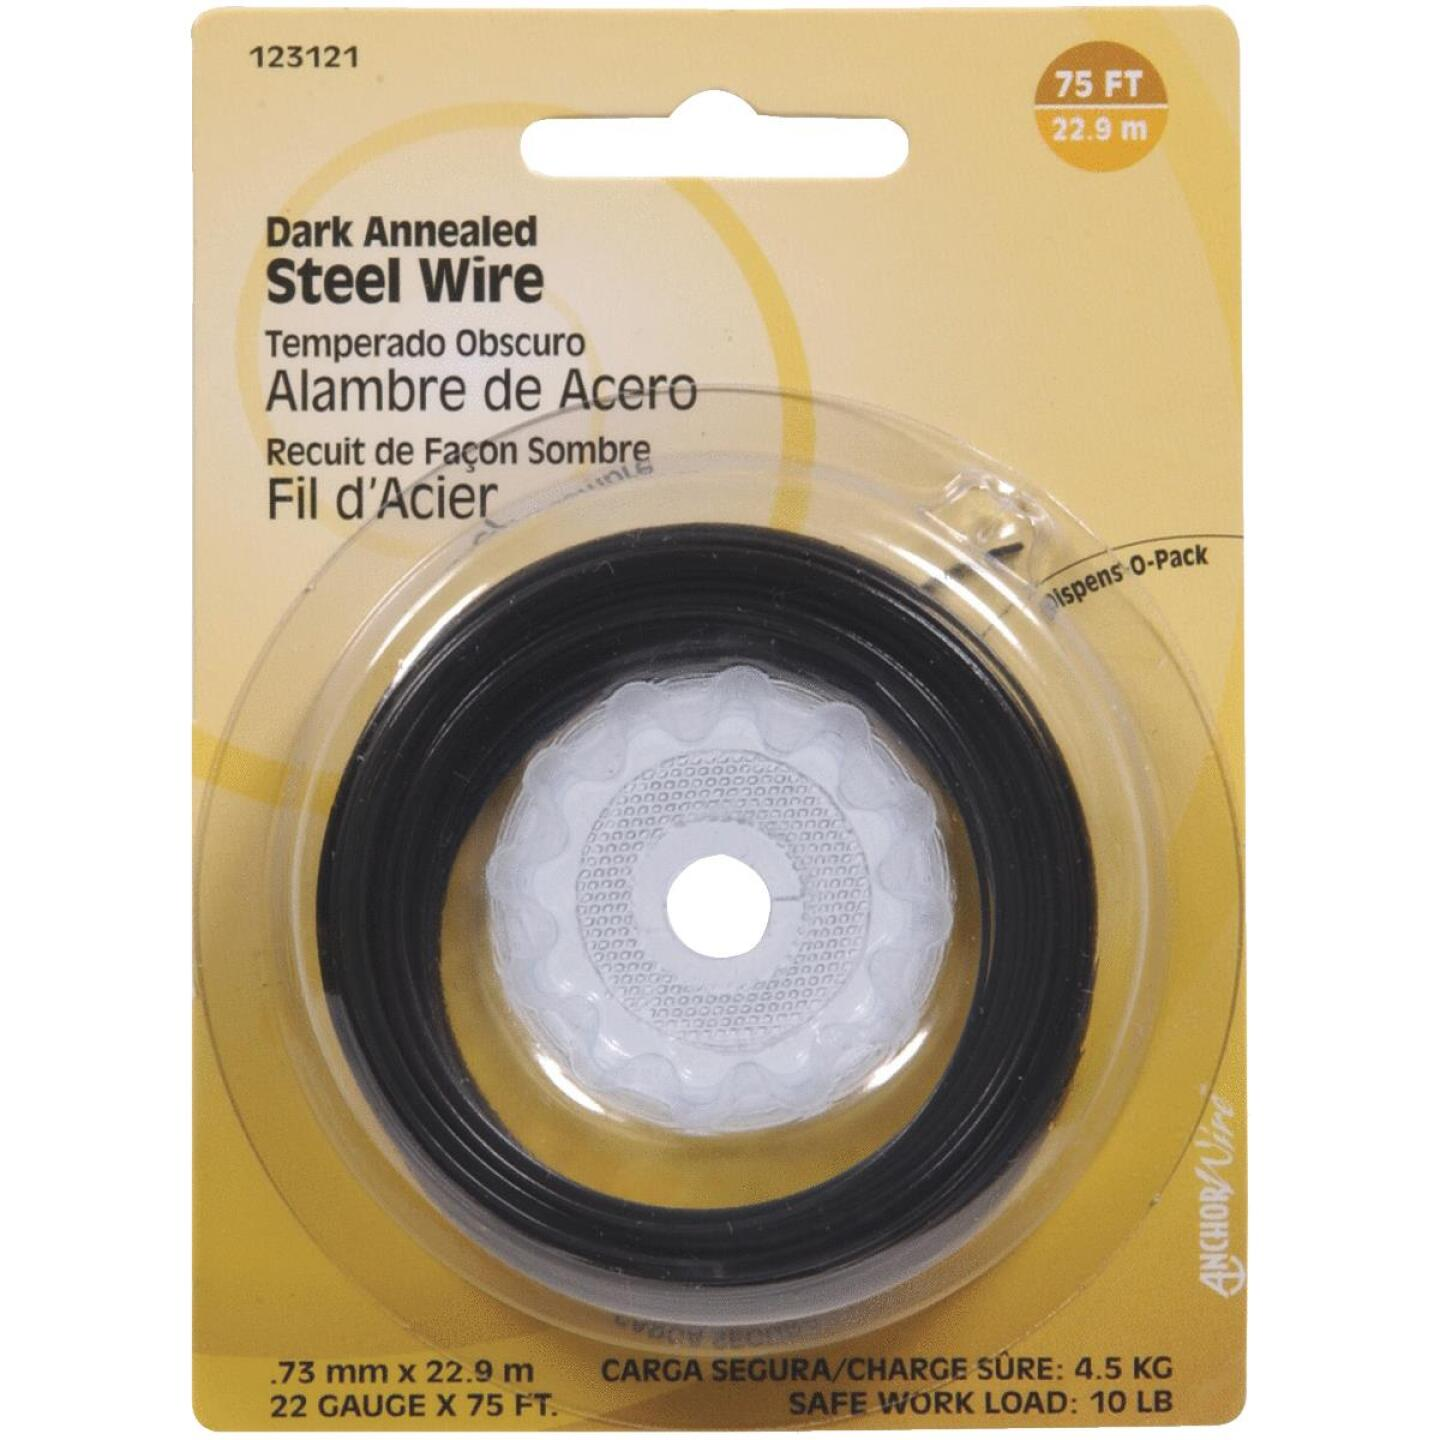 Hillman Fastener Corp 75 Ft. 22 Ga. Dark Annealed Steel Wire Image 1